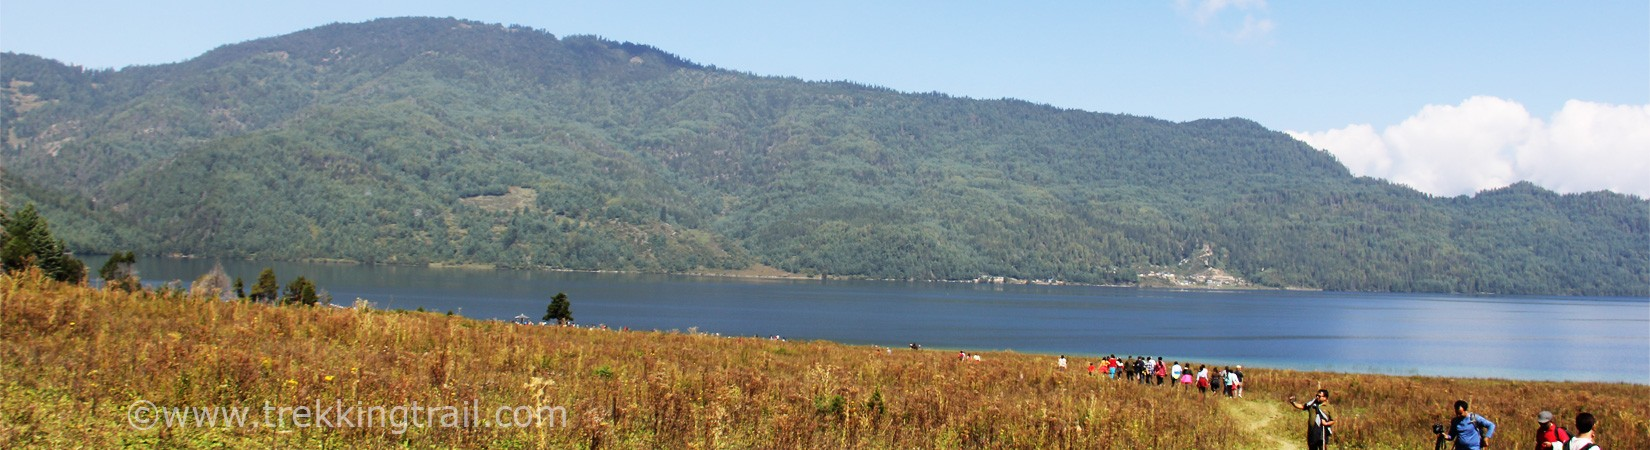 rara lake motor bike tour